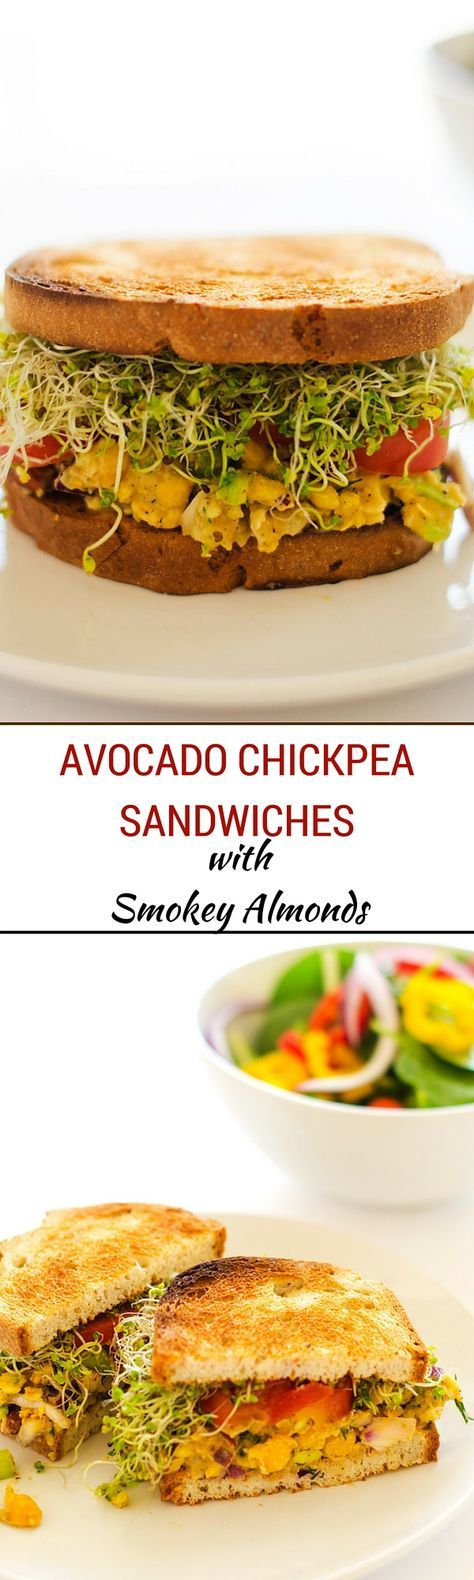 Avocado Chickpea Sandwiches with Smokey Almonds - These amazing vegan and gluten free sandwiches are so packed with flavor! A perfect weekday lunch.